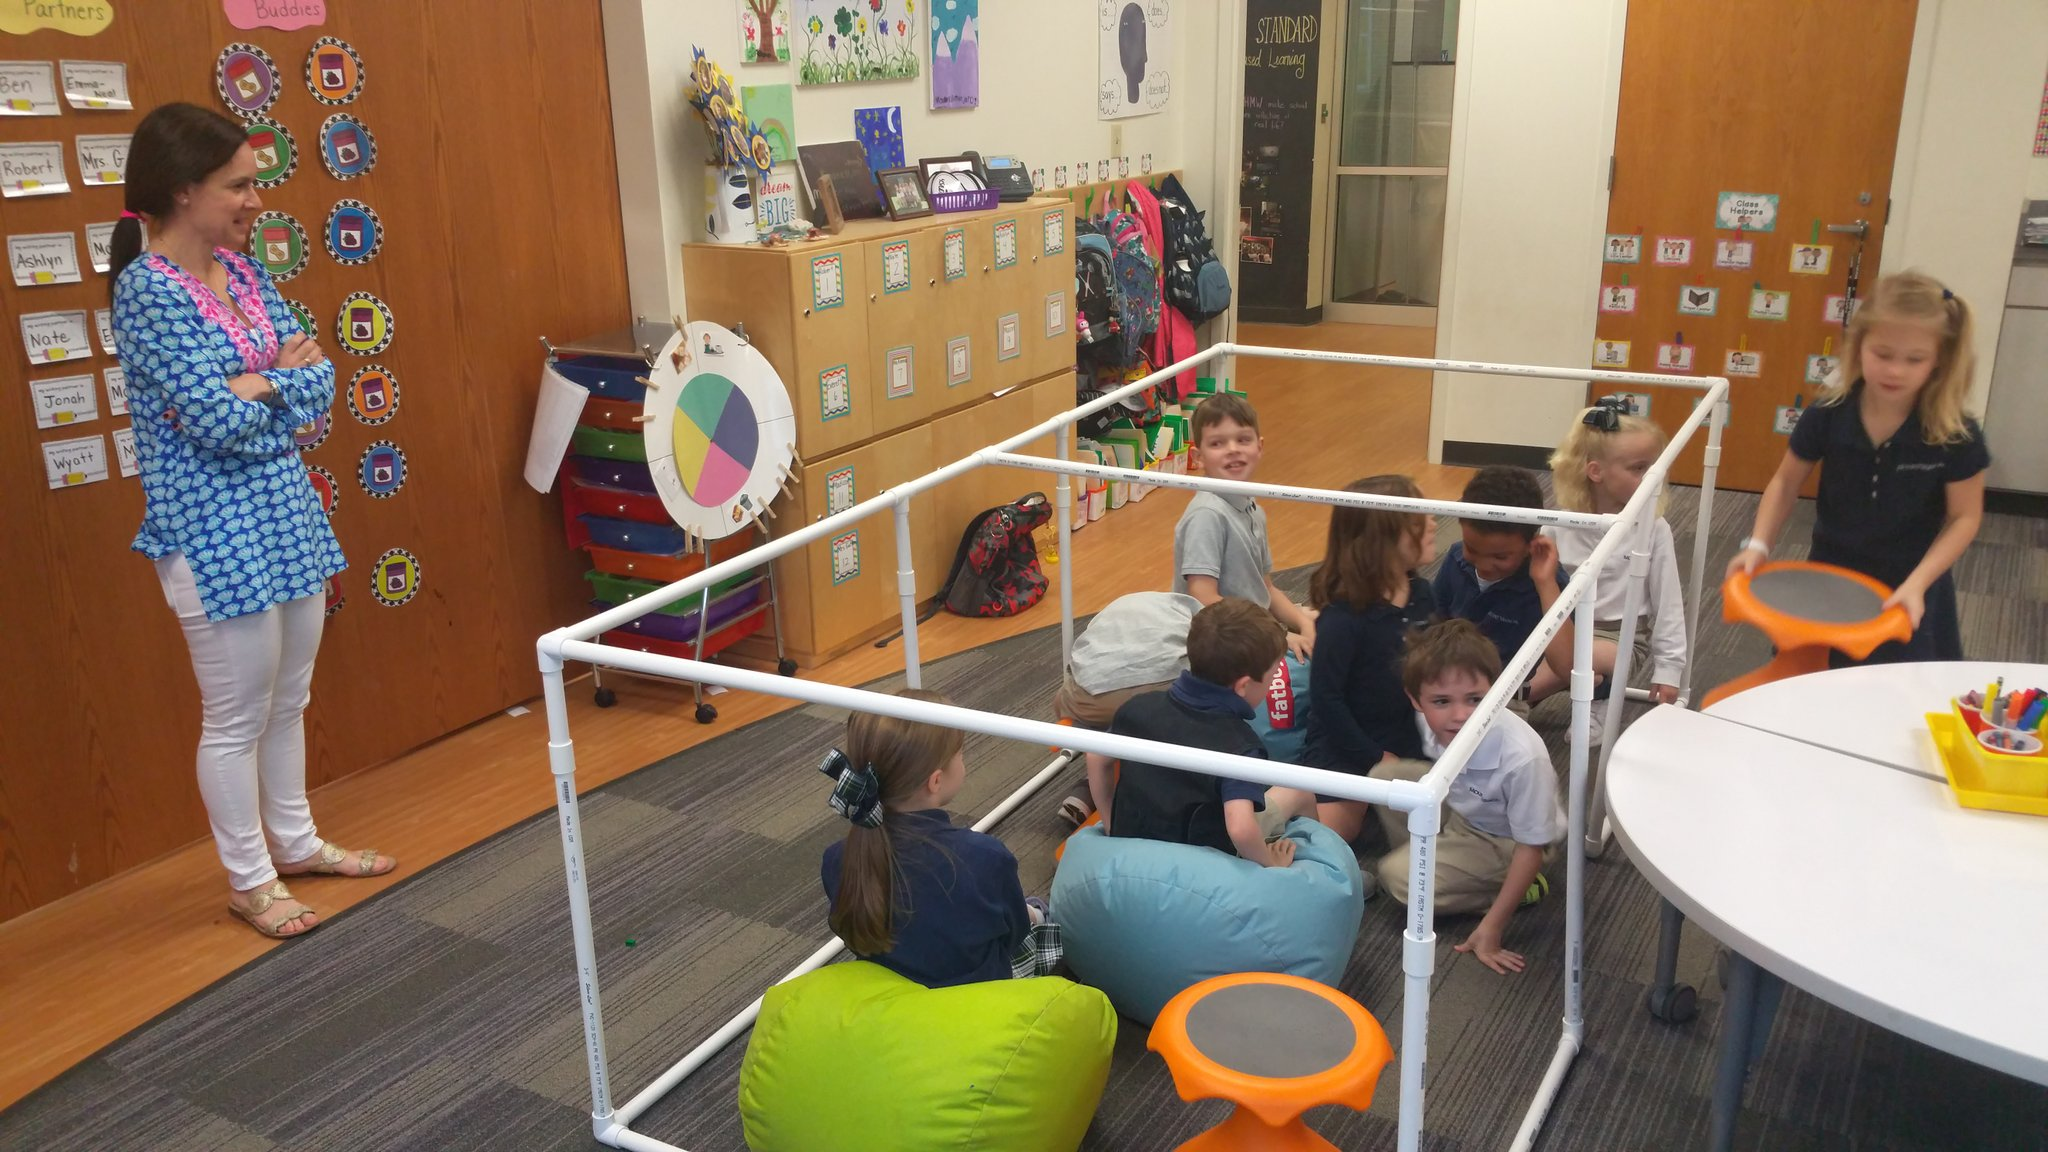 """Our whole class can fit in here!"" #kidquote @gutterymustangs Ks check the placement of their comfy, cozy nook #MakerEd #elemaker #MVPSchool https://t.co/TY2kzz6Hdf"